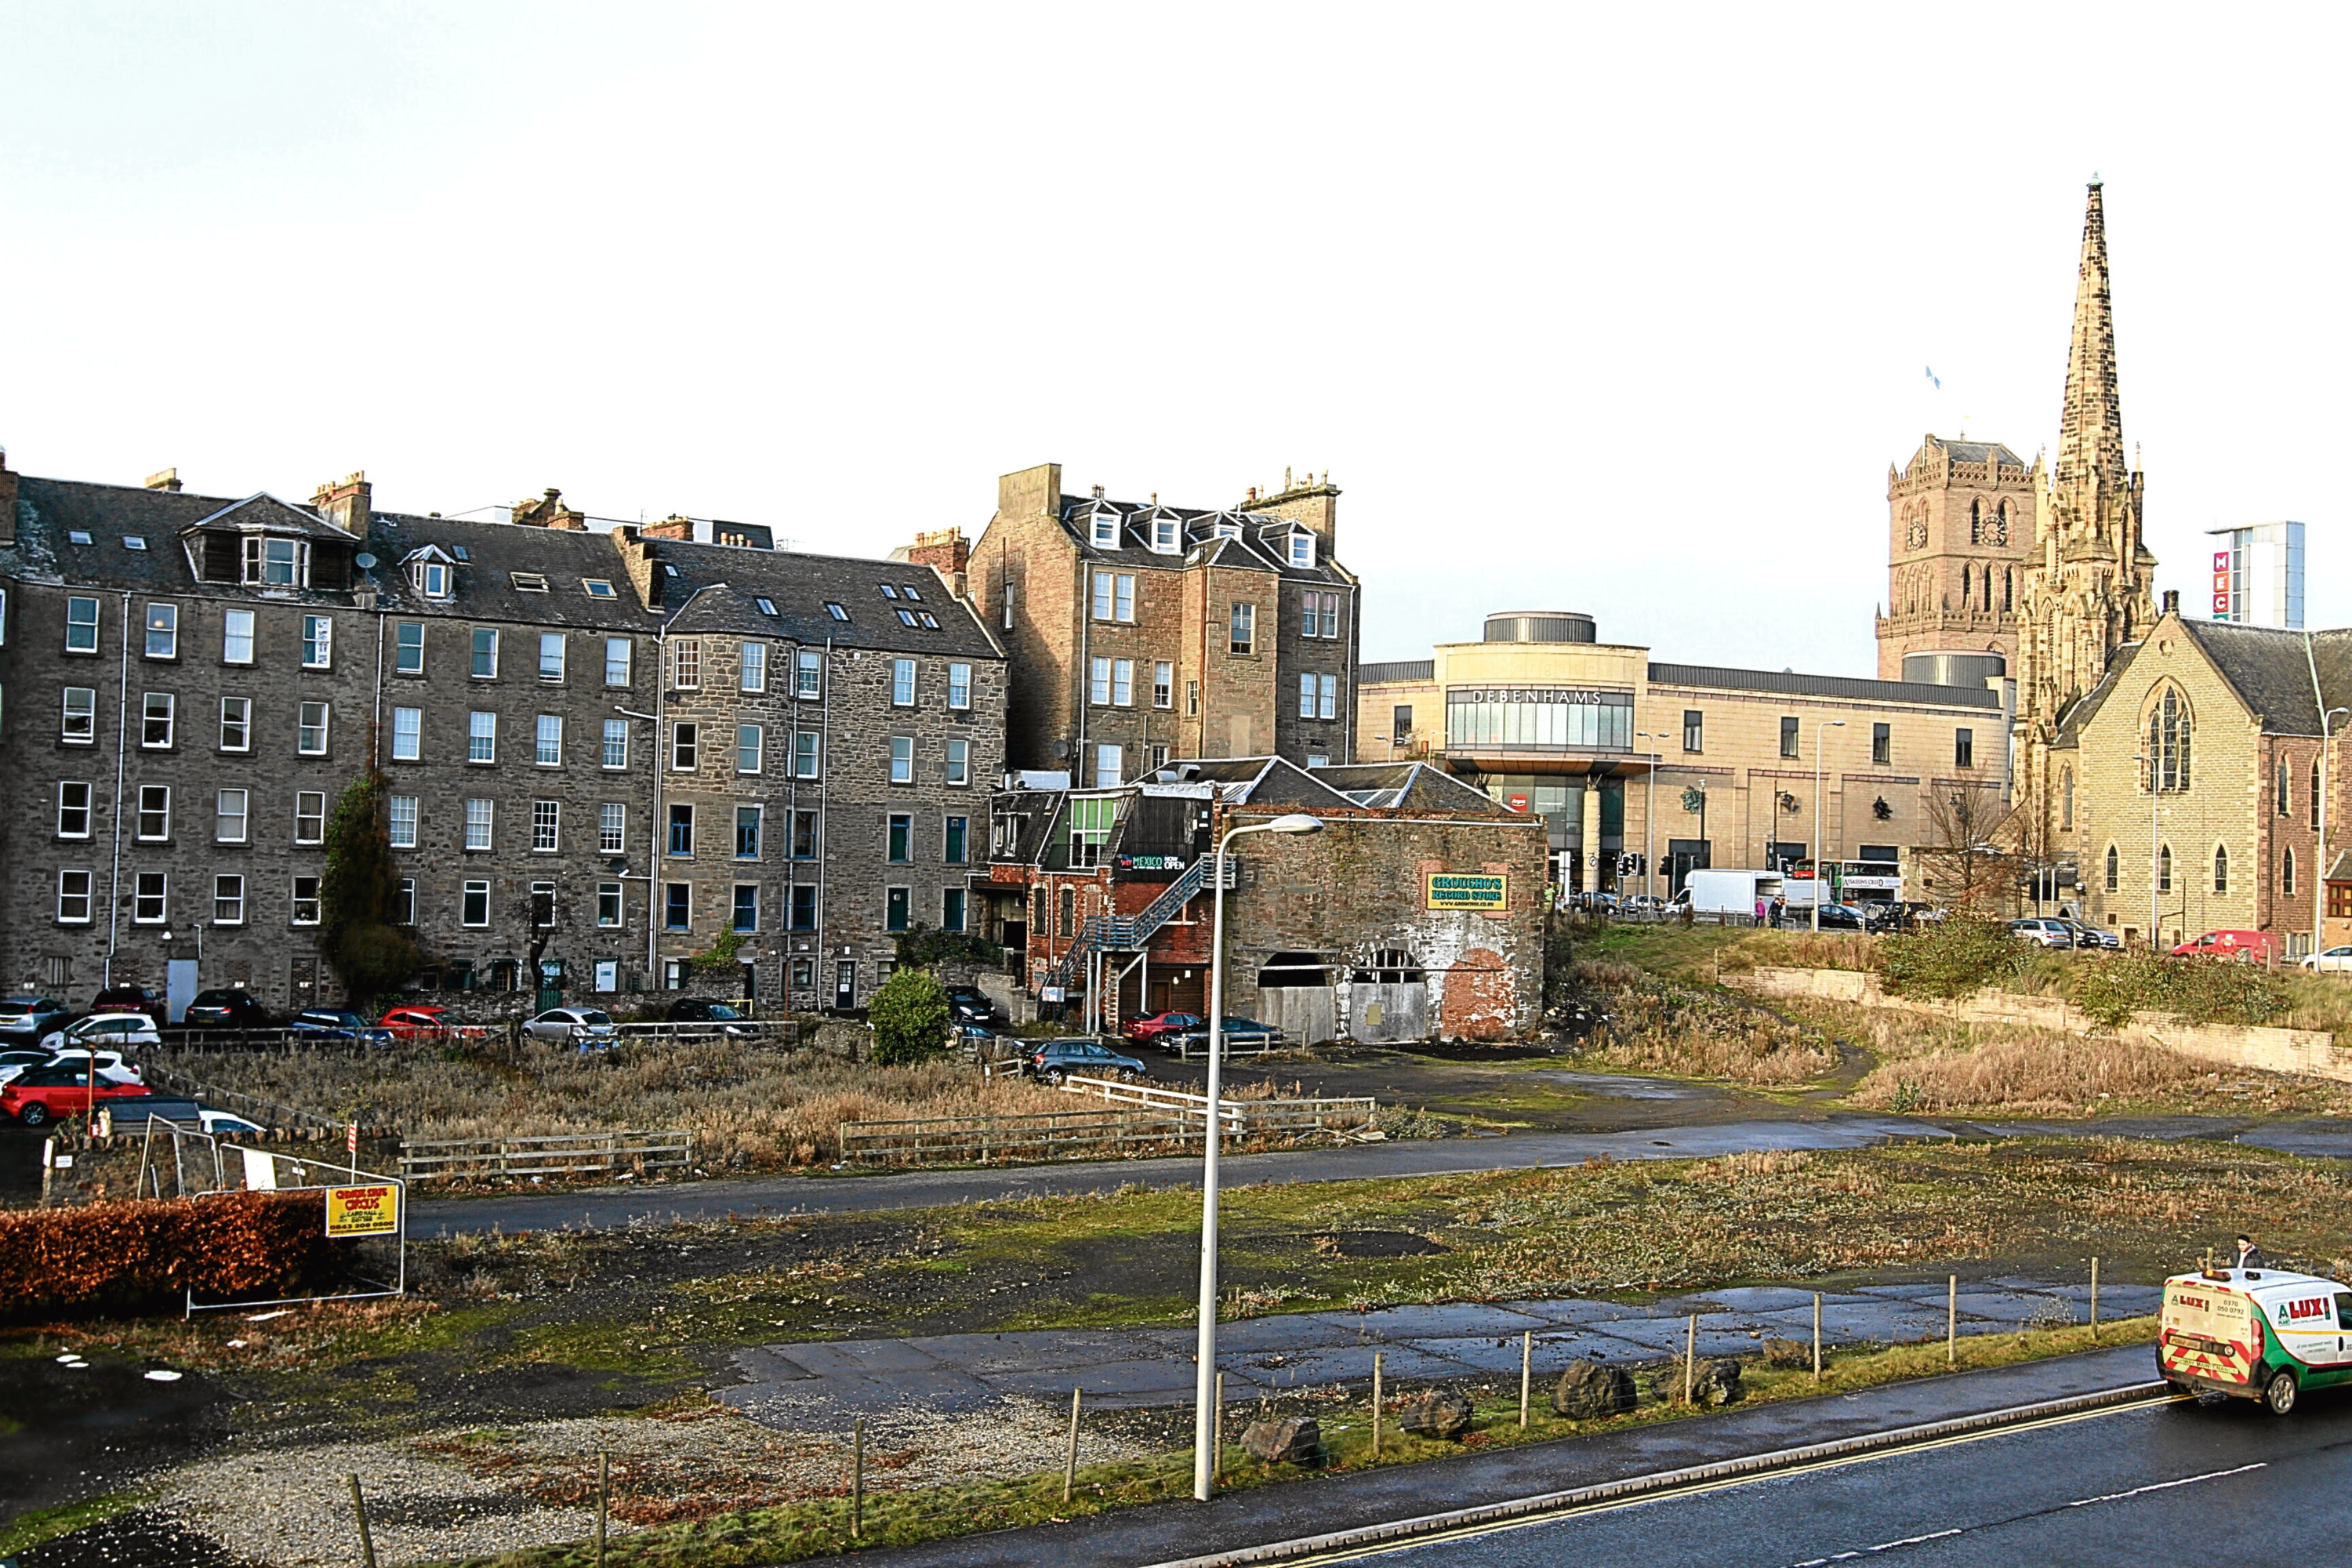 The site earmarked for a proposed cinema multiplex.